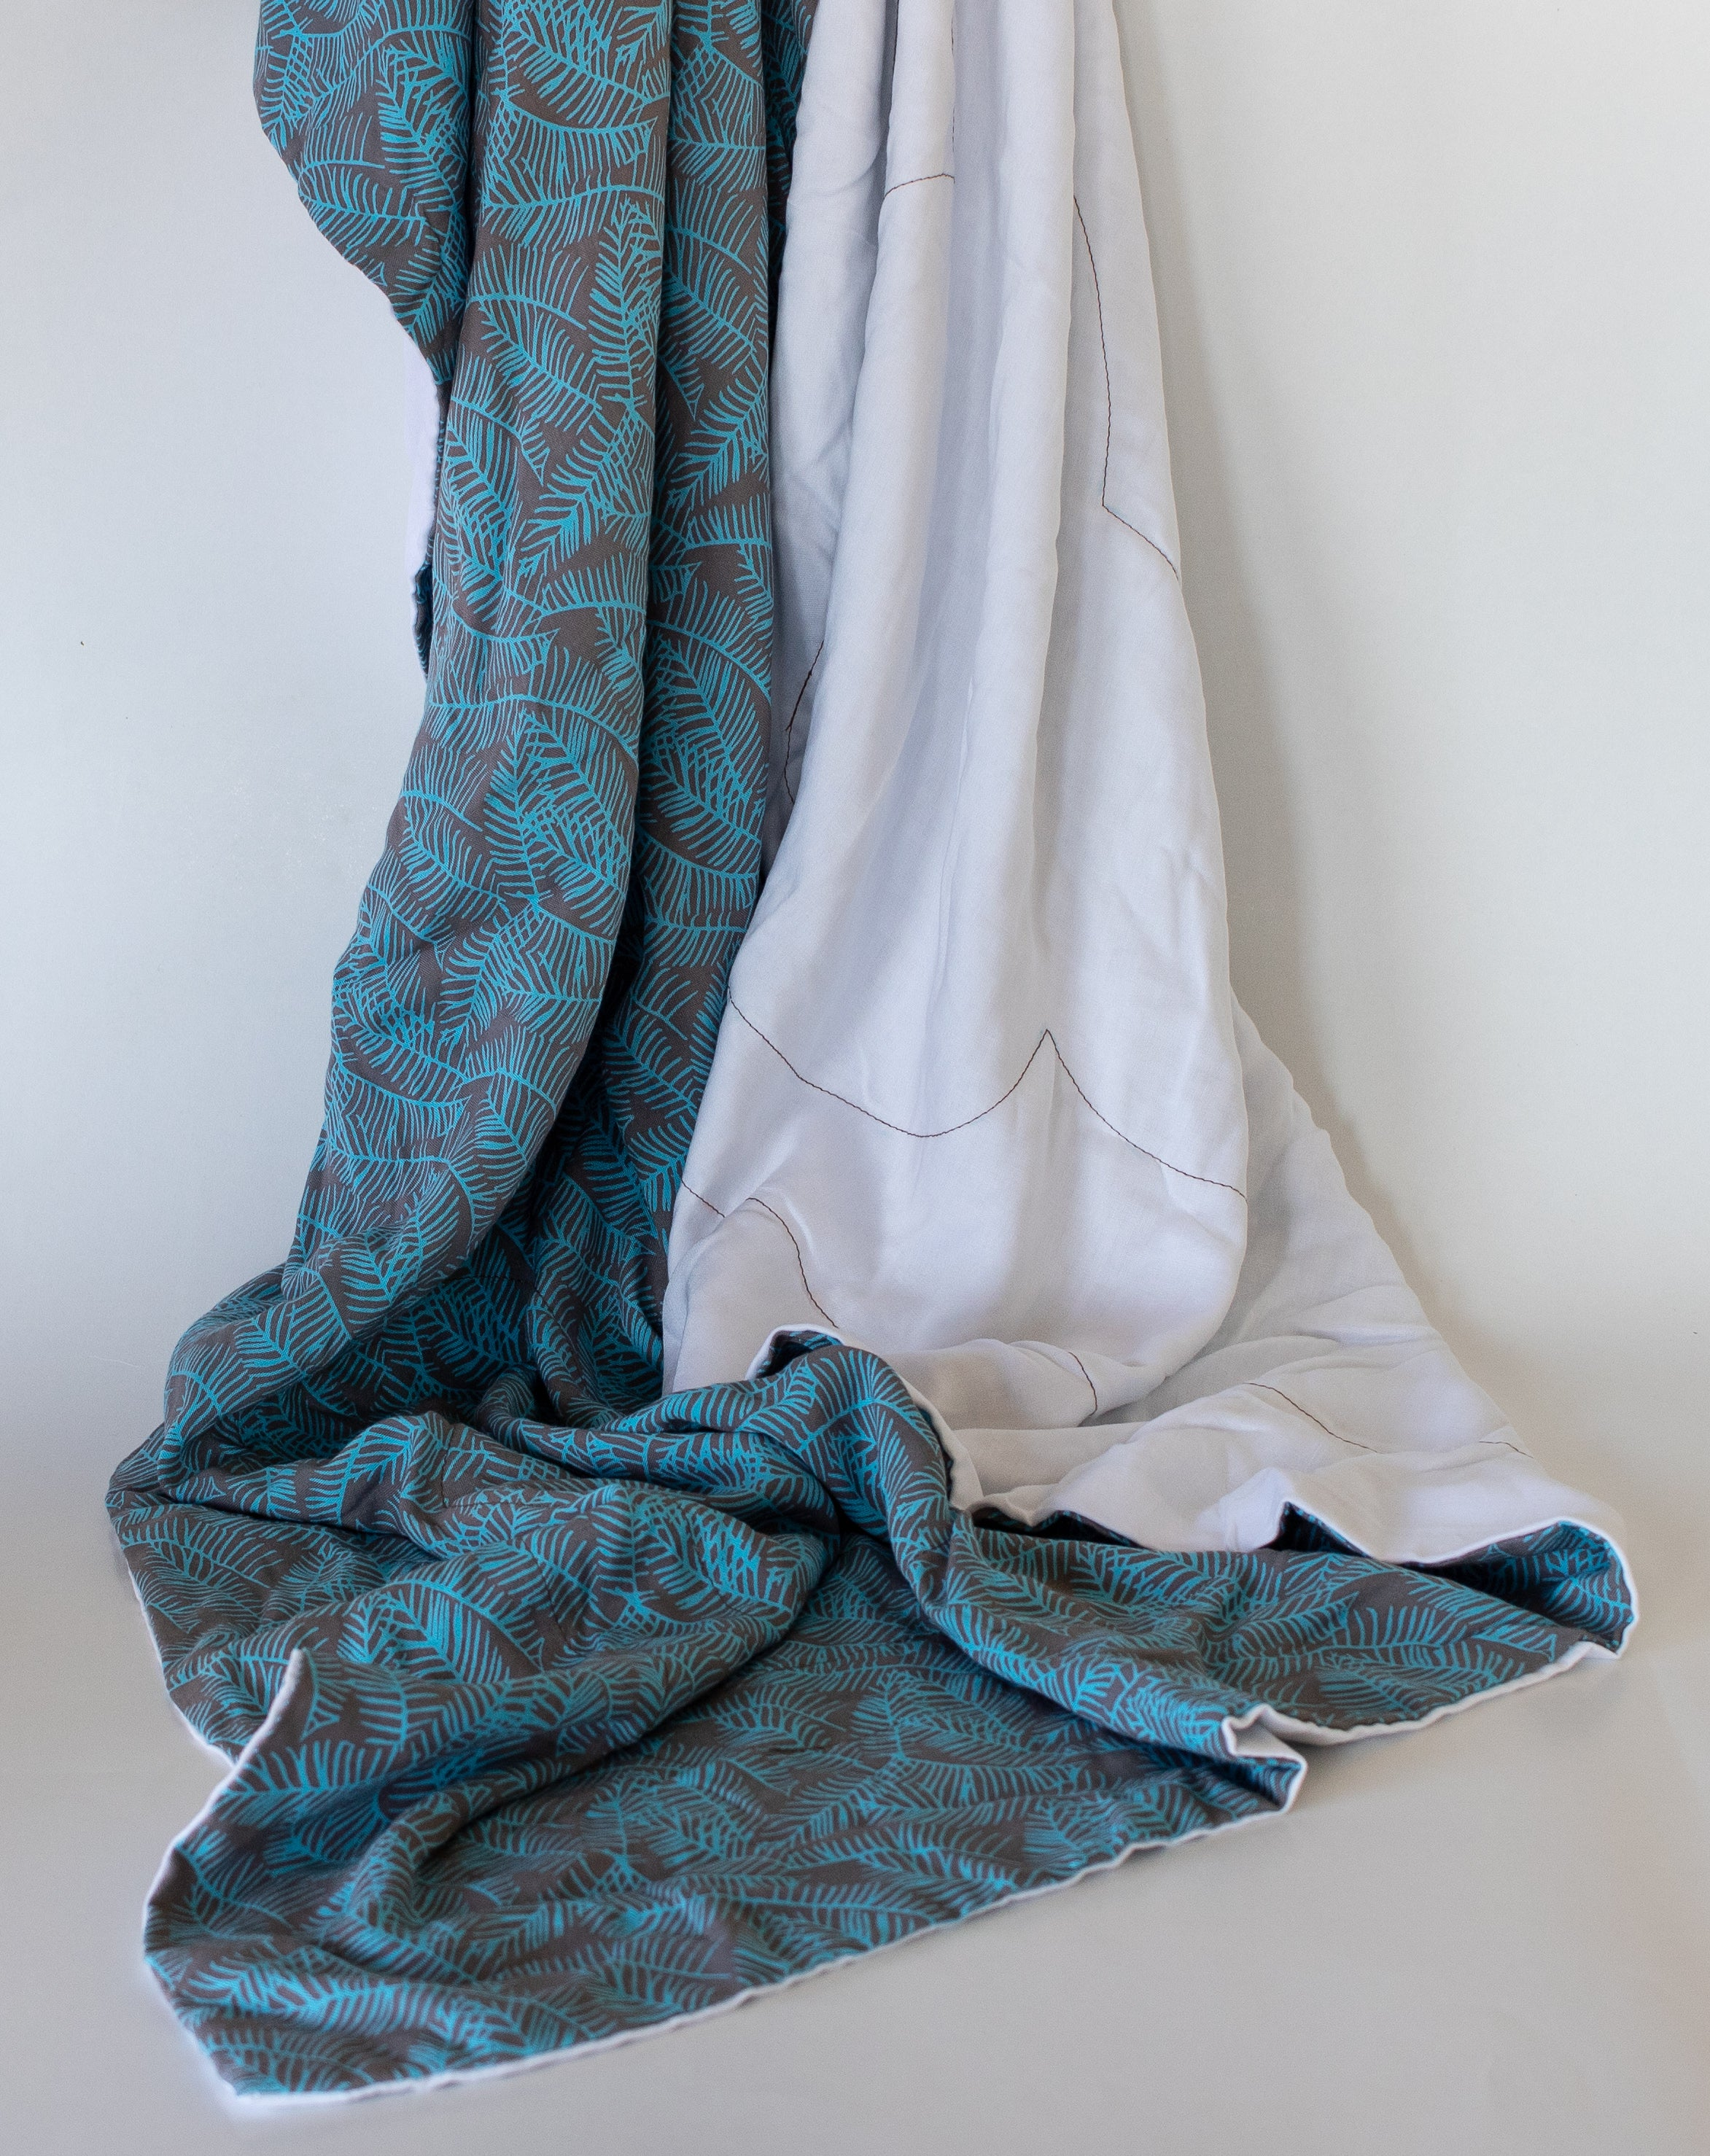 Blanket: Blue & White no Fringe - KNOW INDO